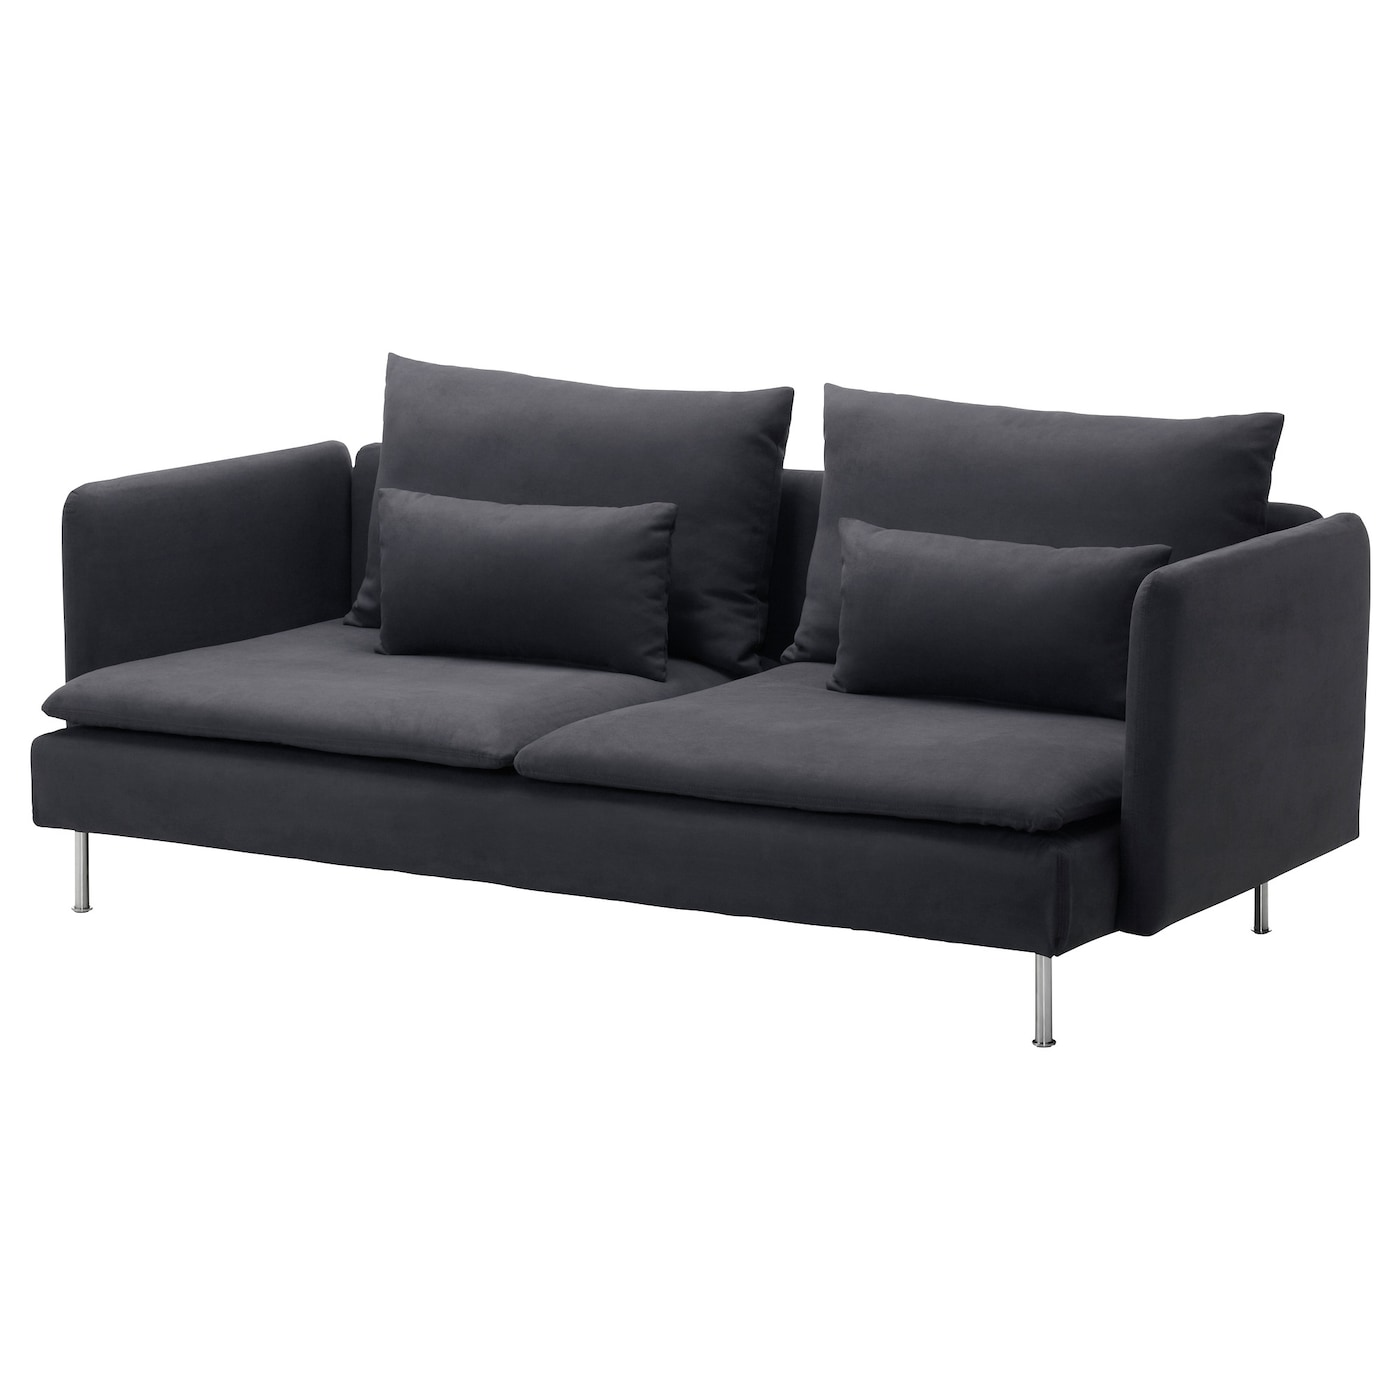 Lounge sofa outdoor günstig  3 Seater Sofa | IKEA